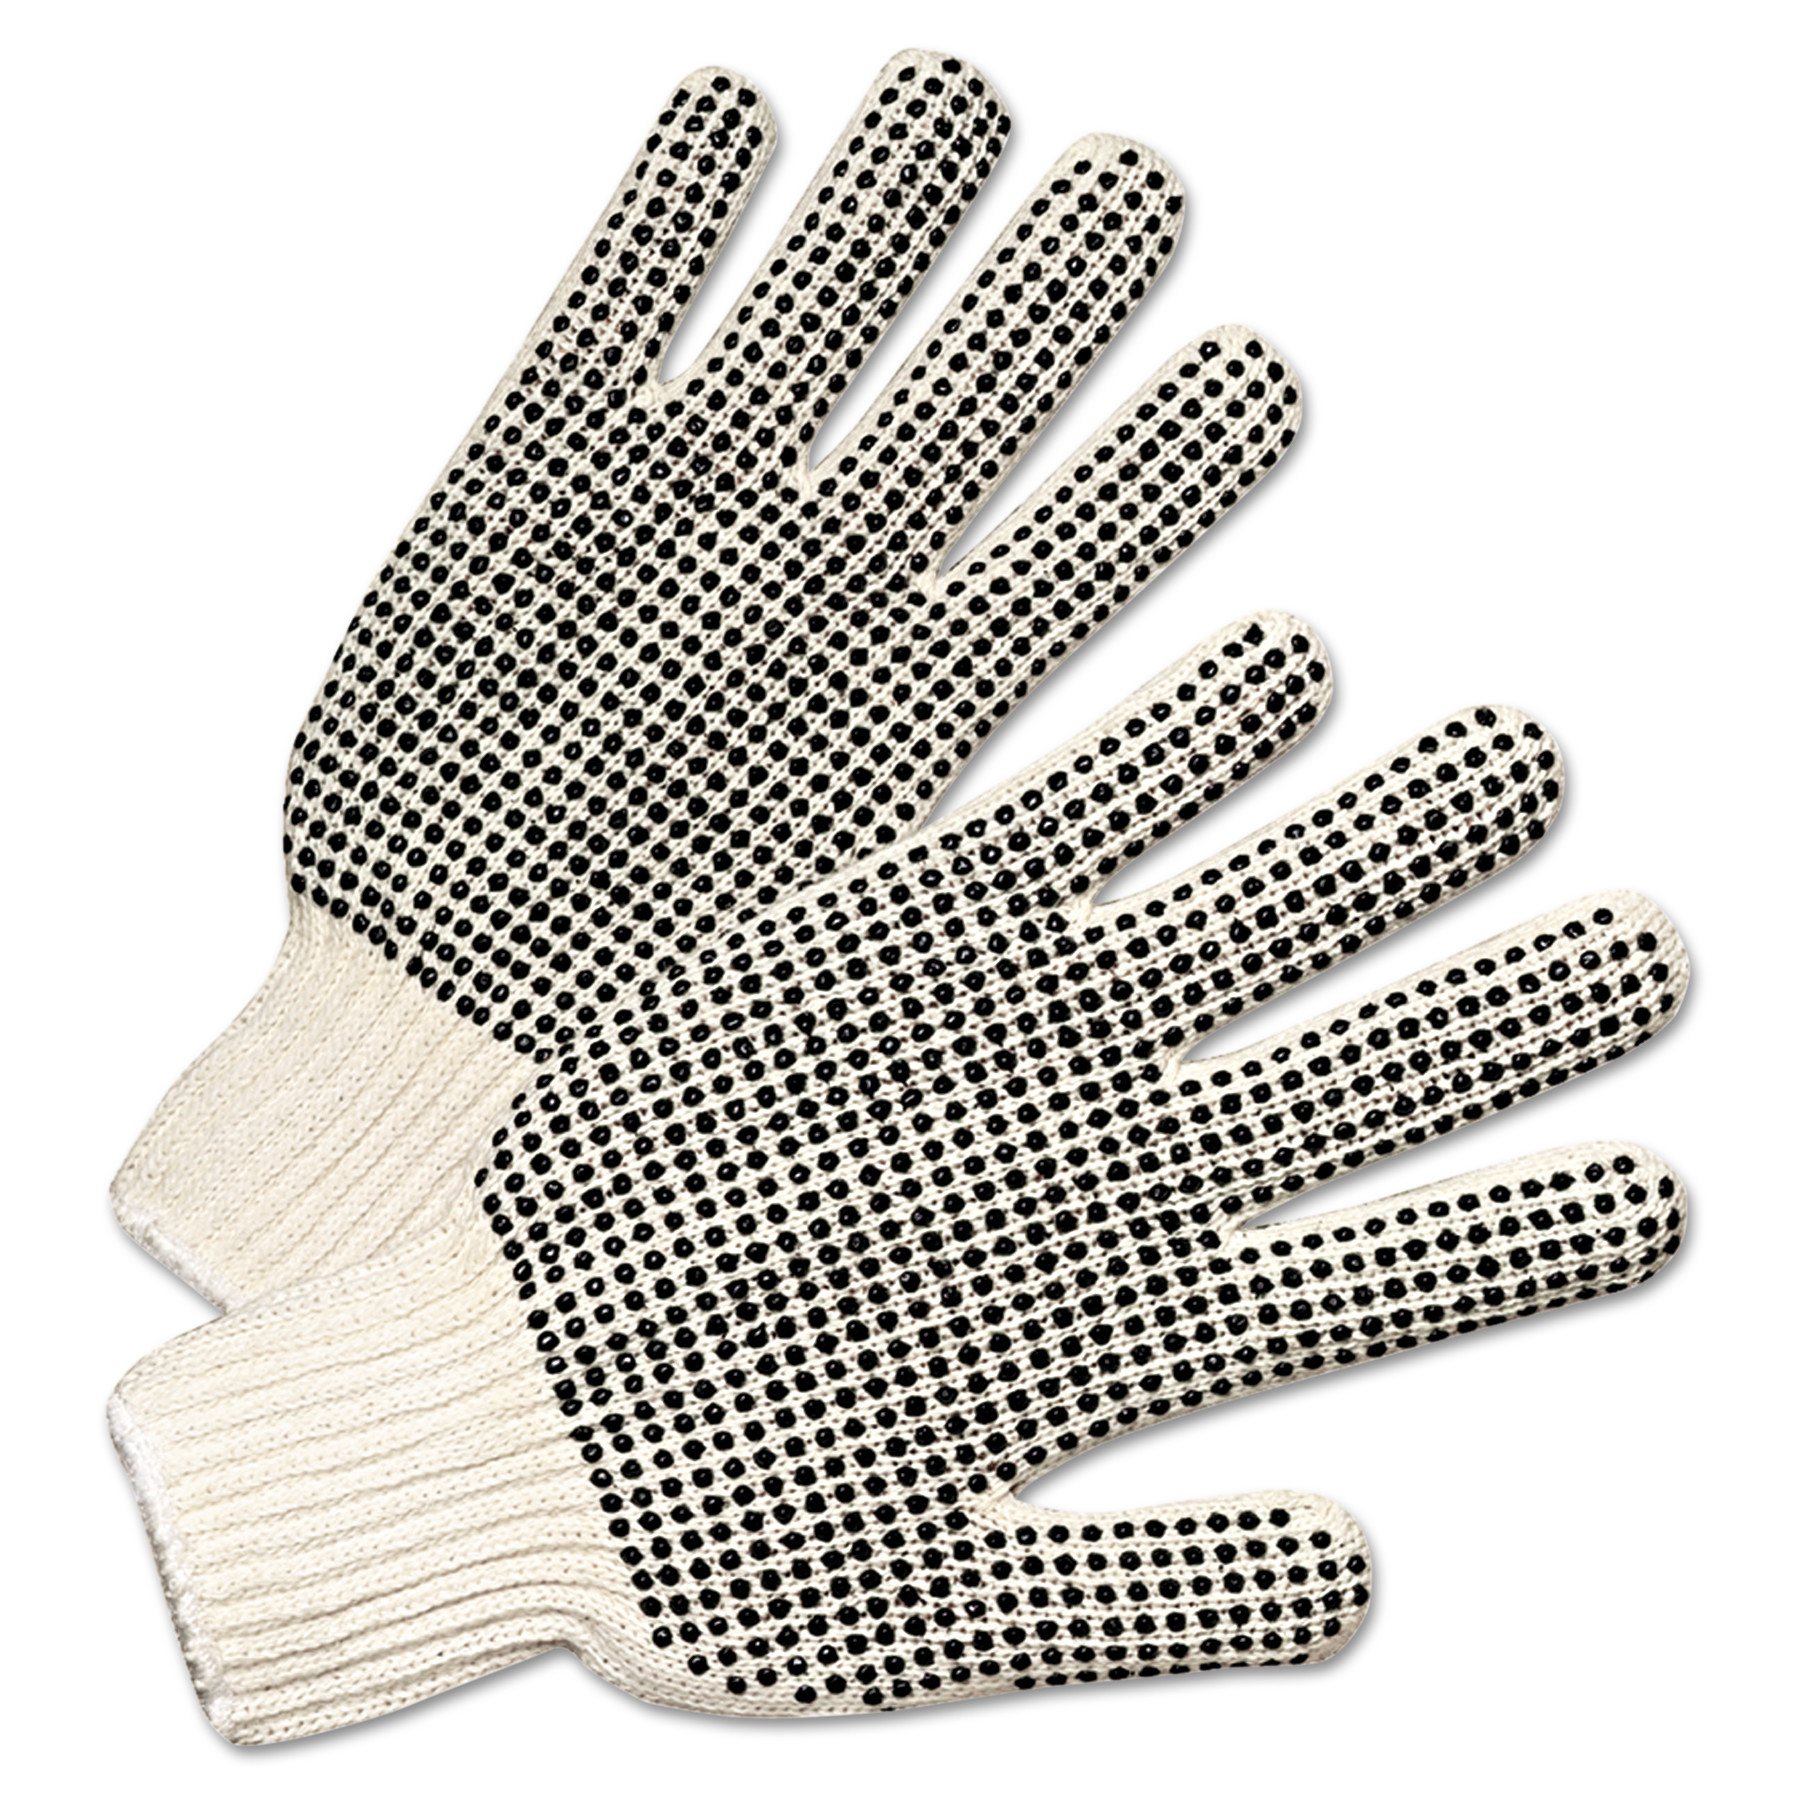 Anchor Brand PVC-Dotted String Knit Gloves, Natural White/Black, 12 Pairs